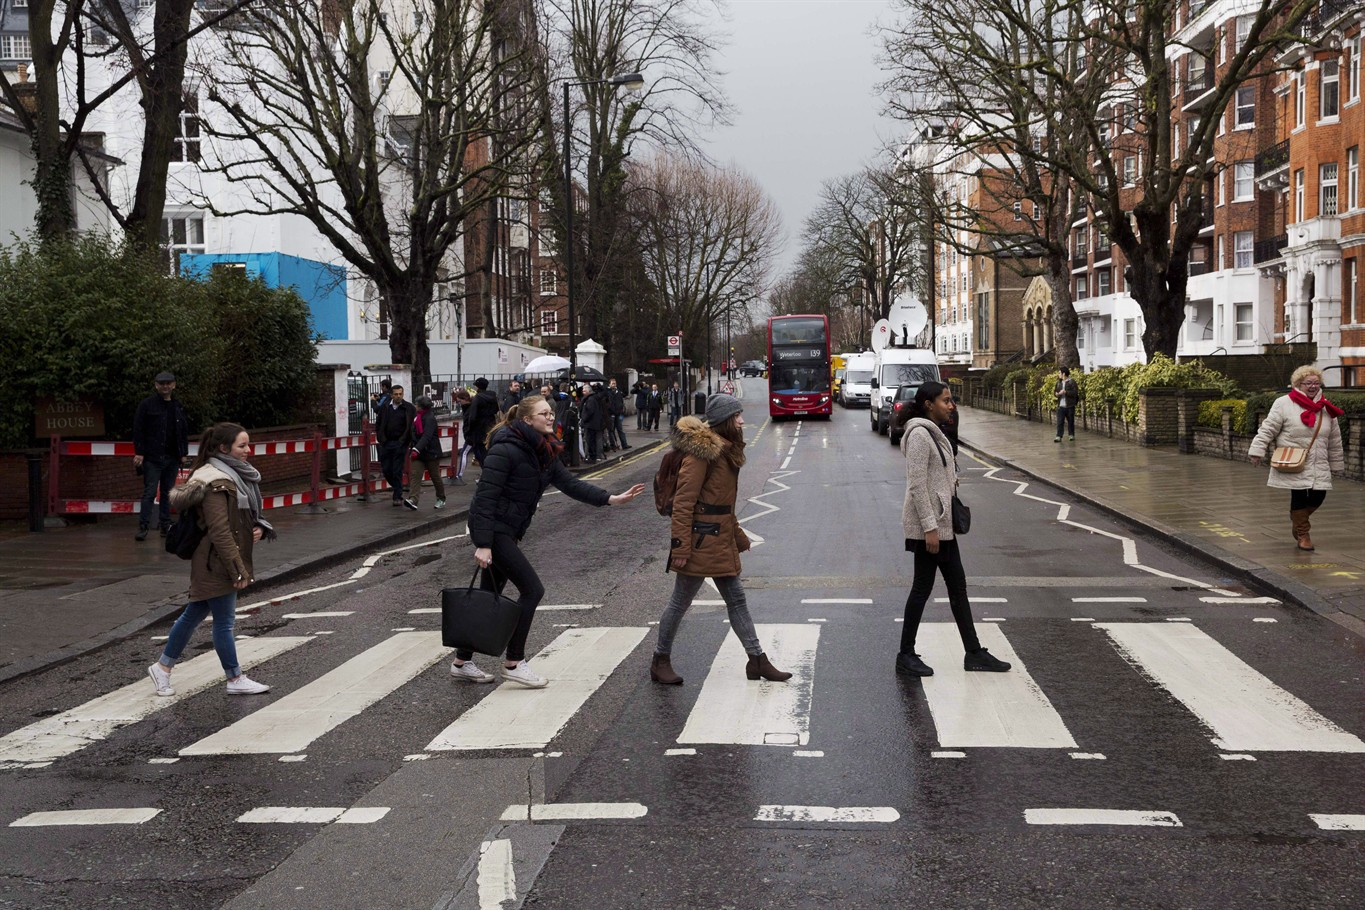 Come TogetherBeatles Fans Still Flock To Zebra Crossing For Abbey Road Photo